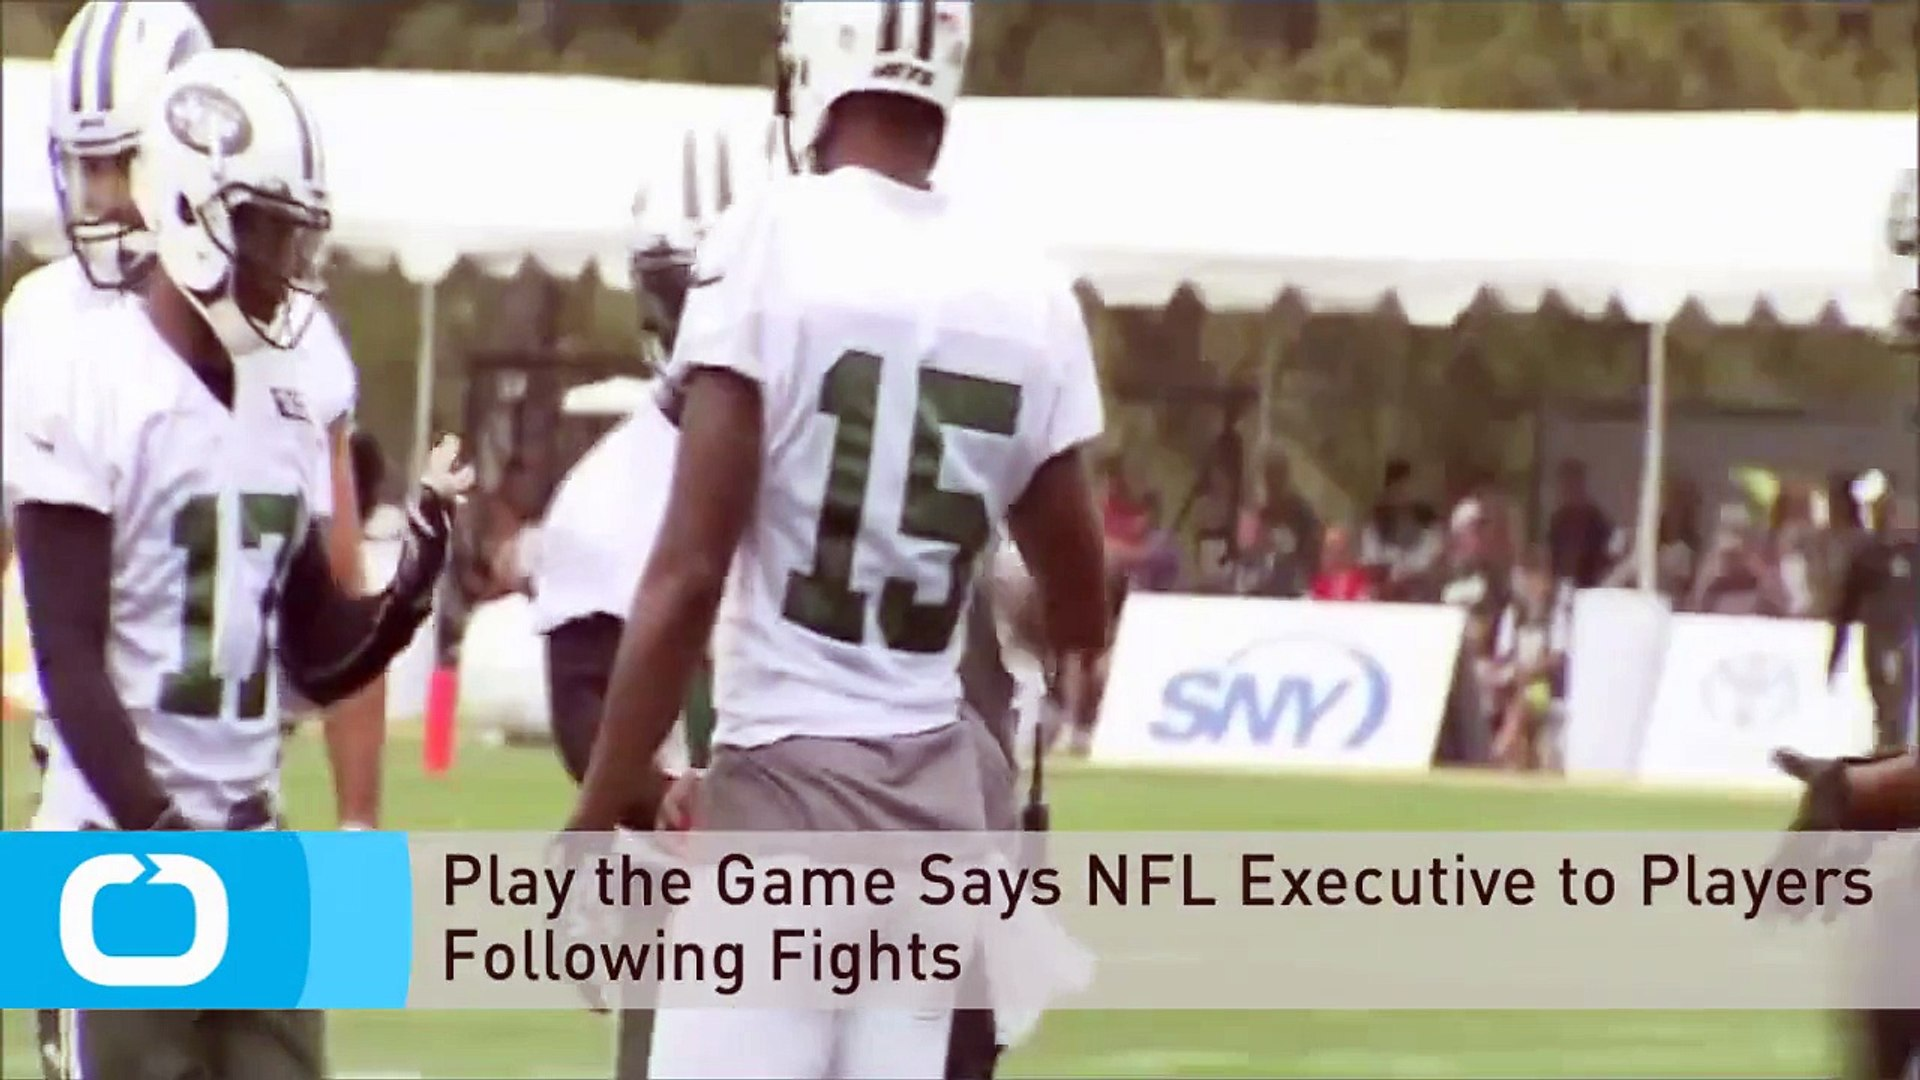 Play the Game Says NFL Executive to Players Following Fights